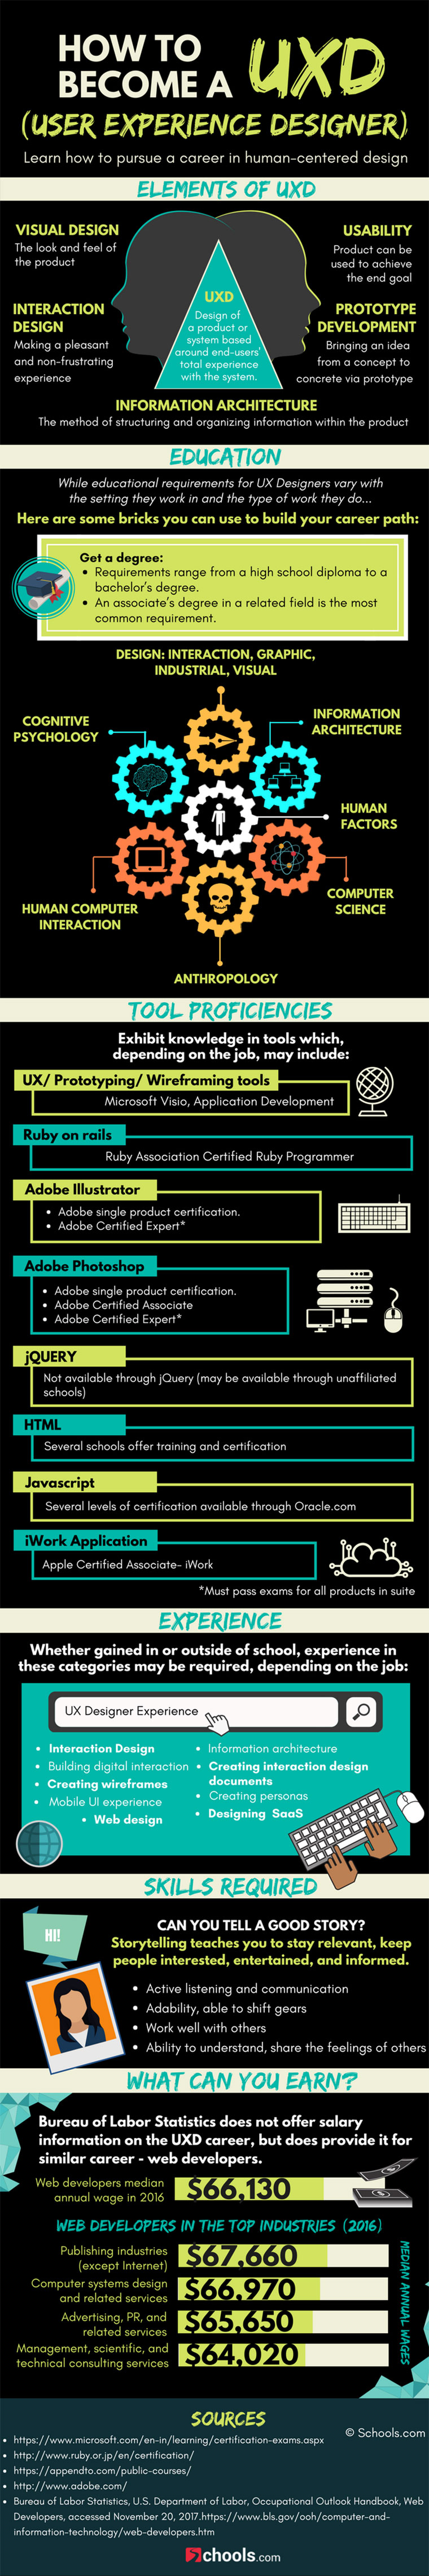 How to Build a Career as a UX Designer - Infographic